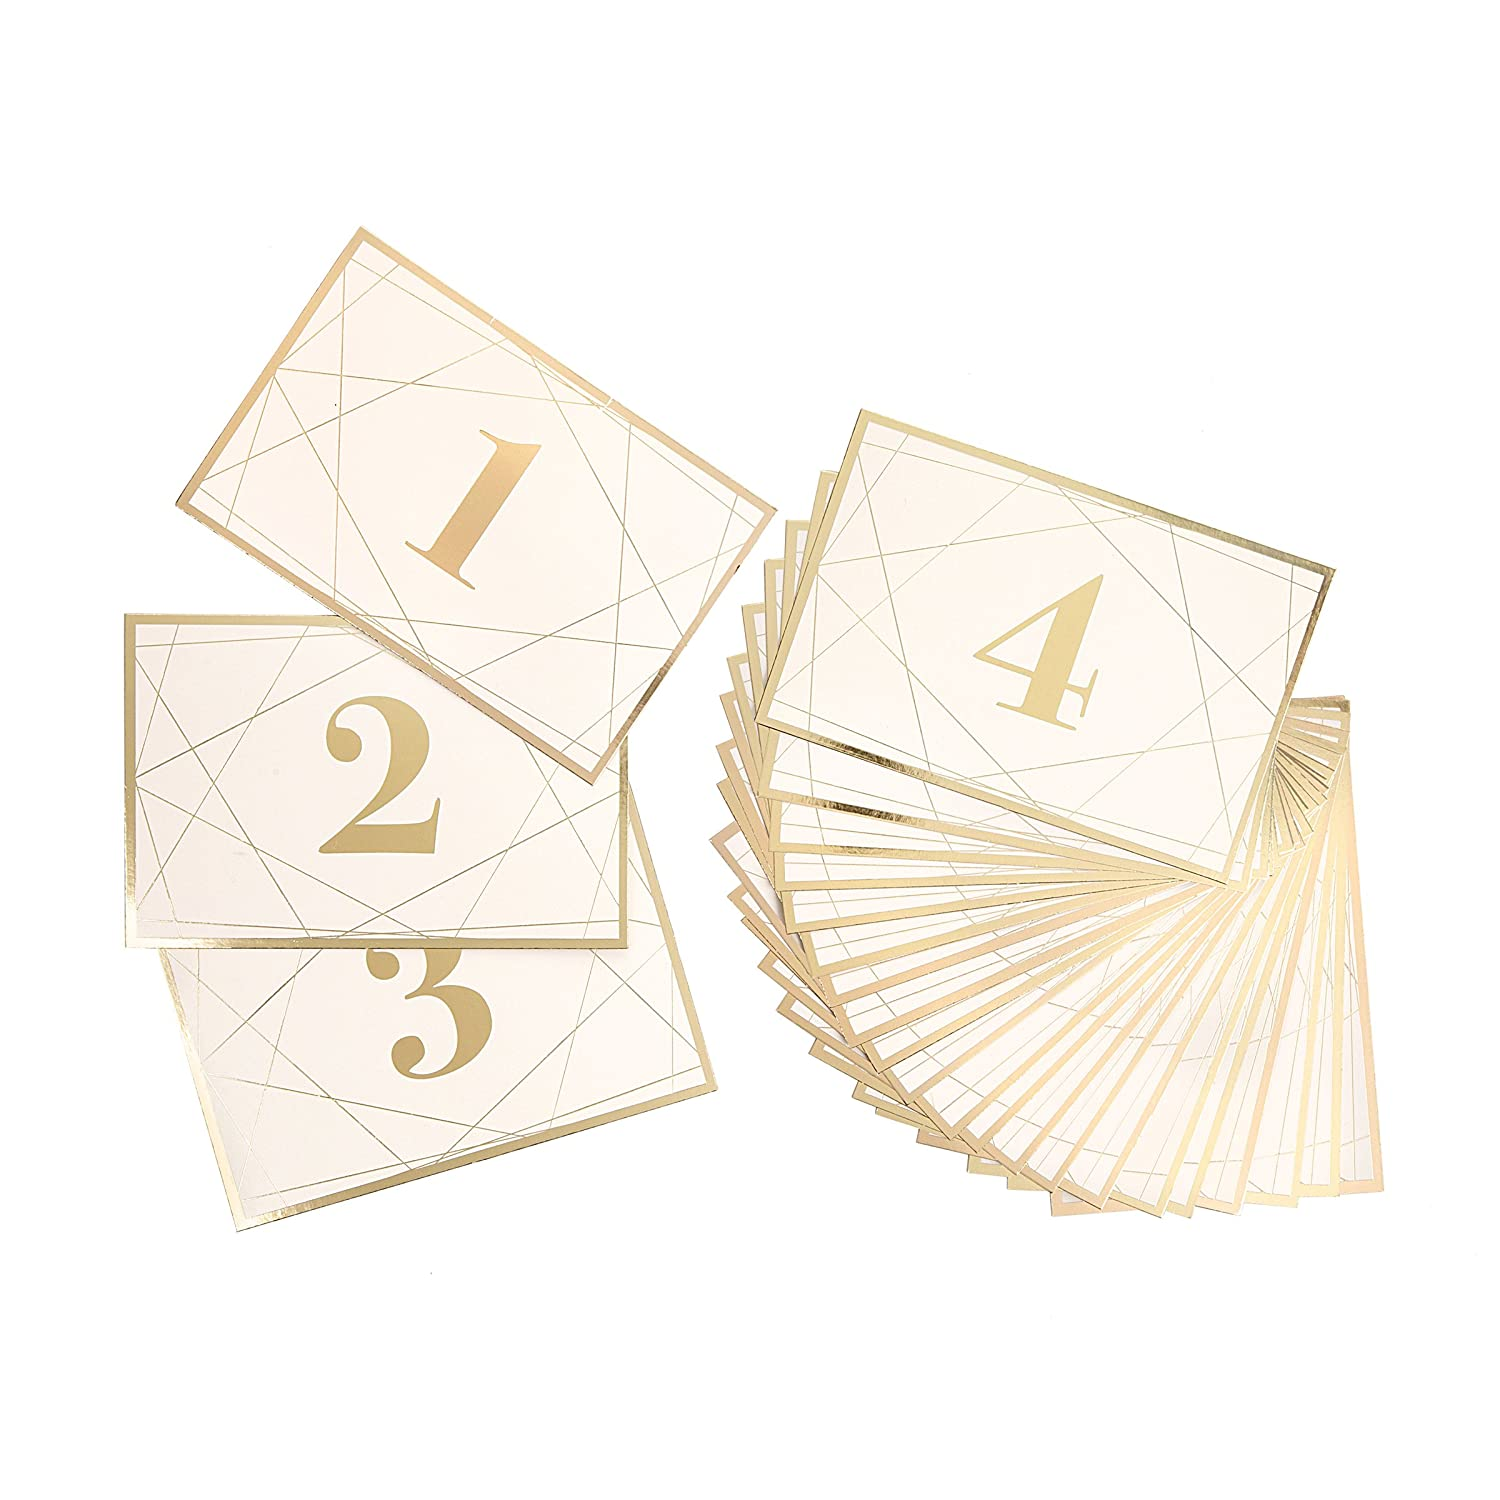 Darice David Tutera Modern Geometric Gold Foil Table Number Cards, 25 Piece 30021647